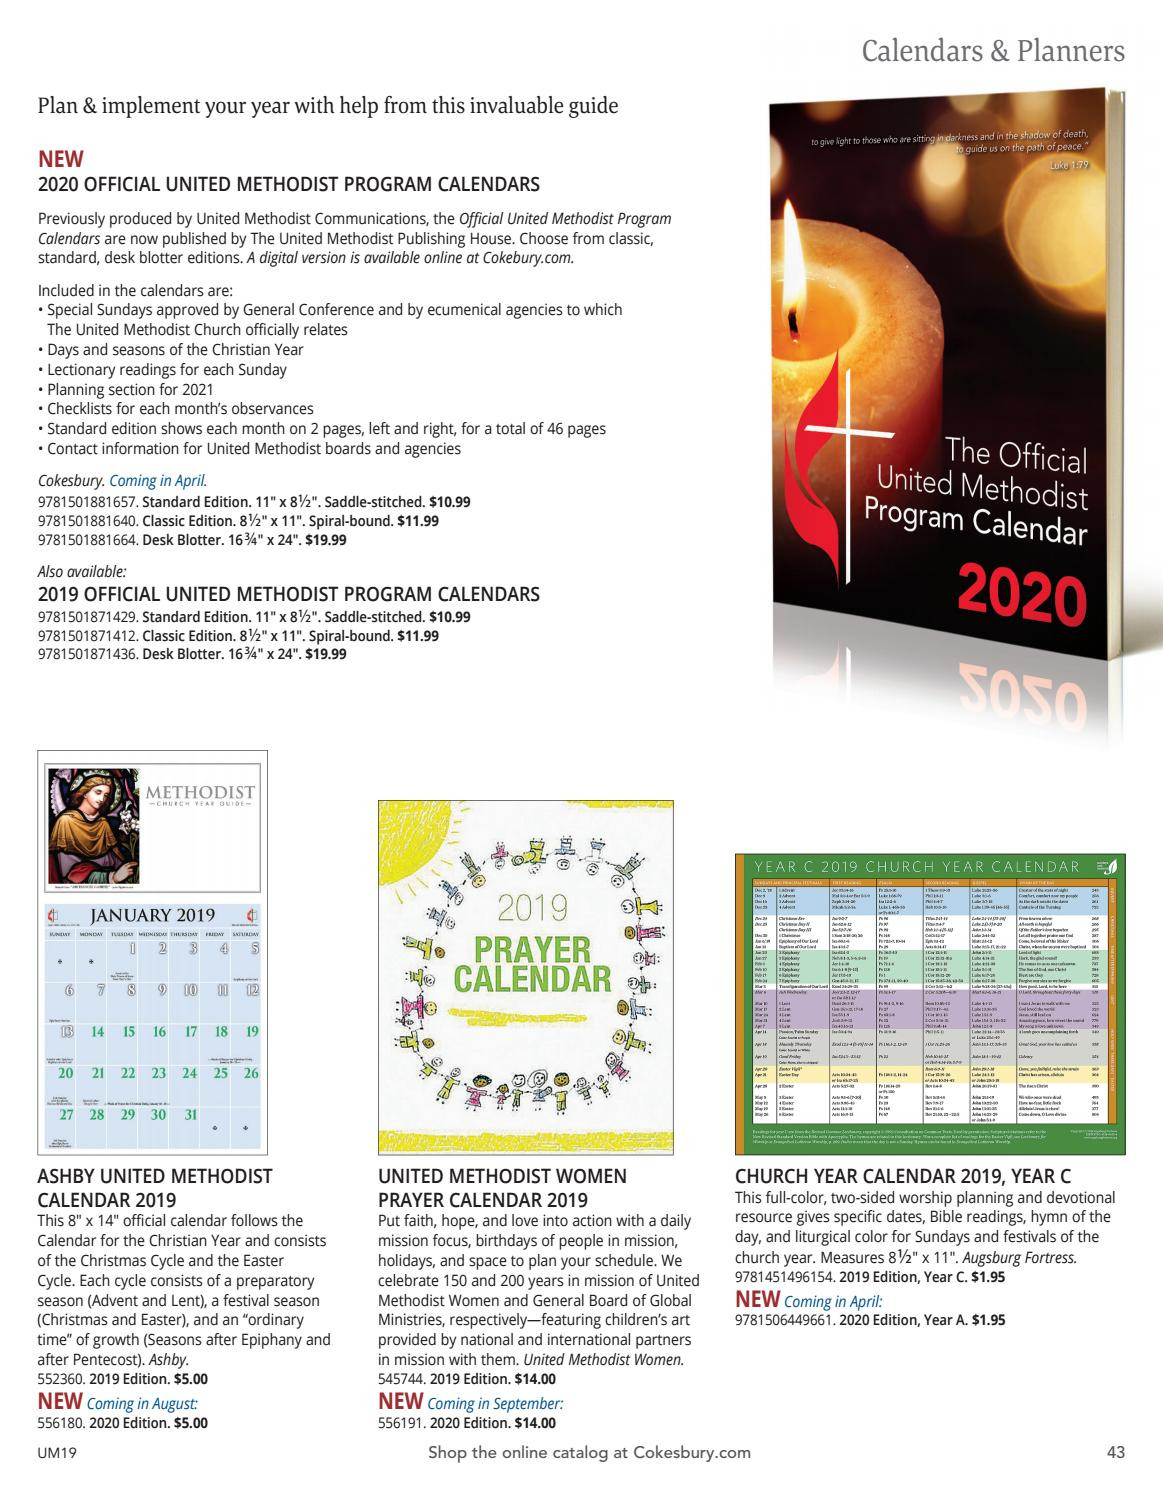 The United Methodist Church Resources For 2019 Catalog  Methodist Lectionary 2021 Calendar